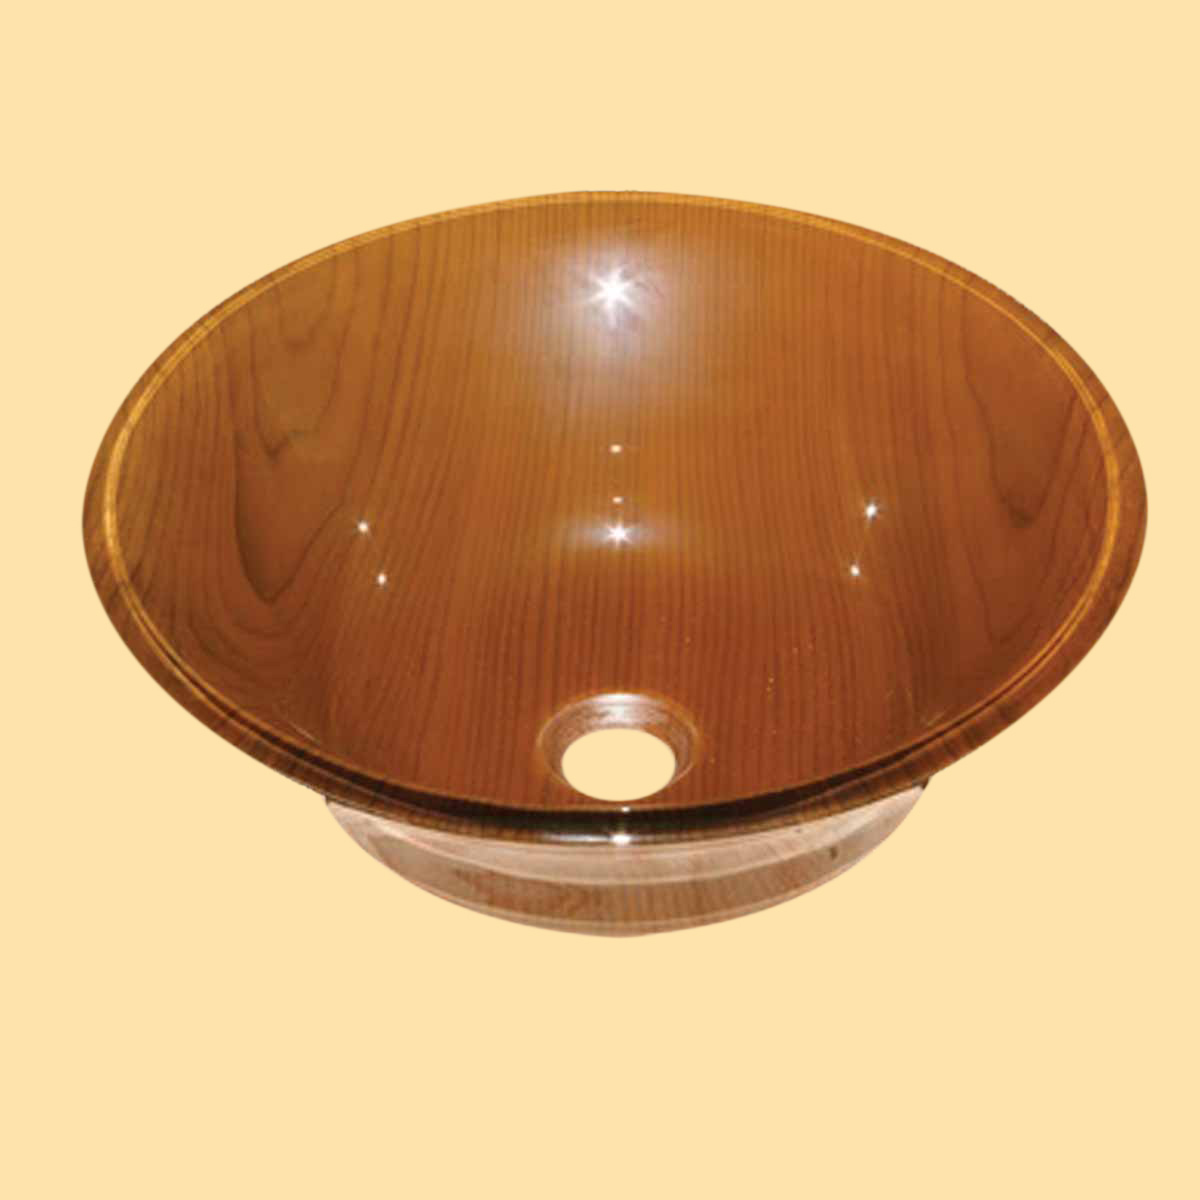 Tempered Glass Vessel Sink With Drain Wood Grain Double